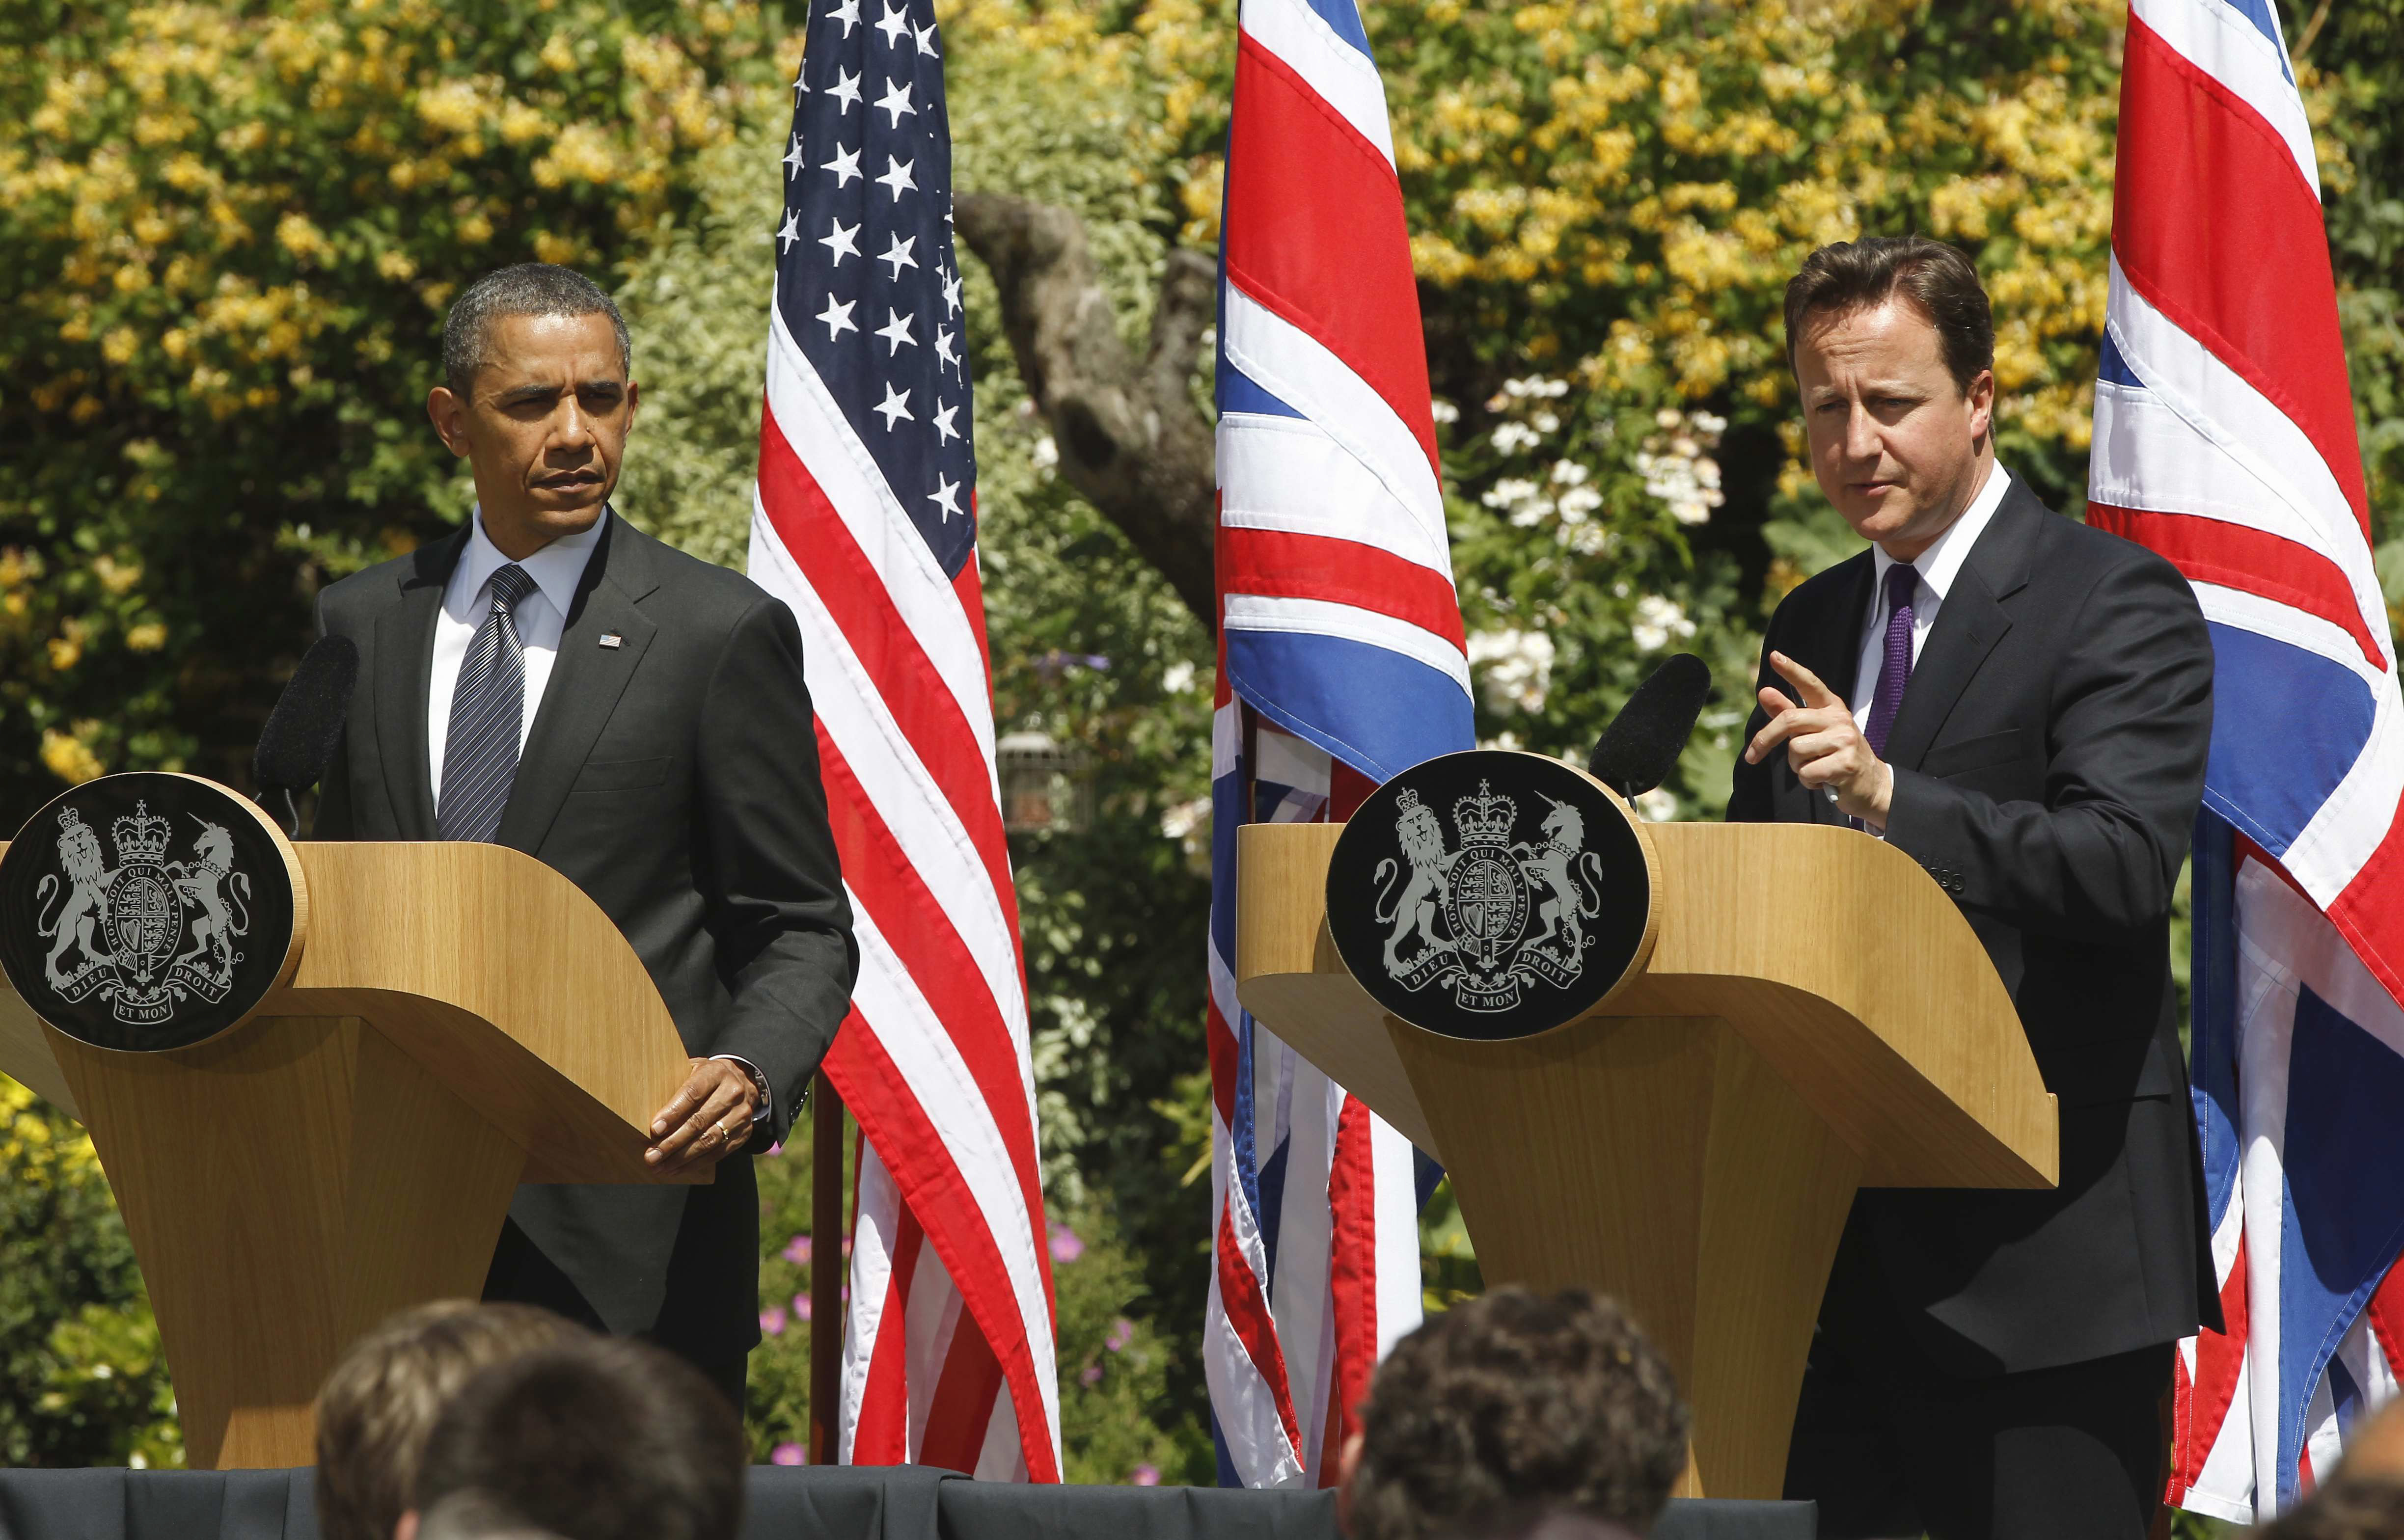 Britain's Cameron urges Obama to leave first lady at home during G-8